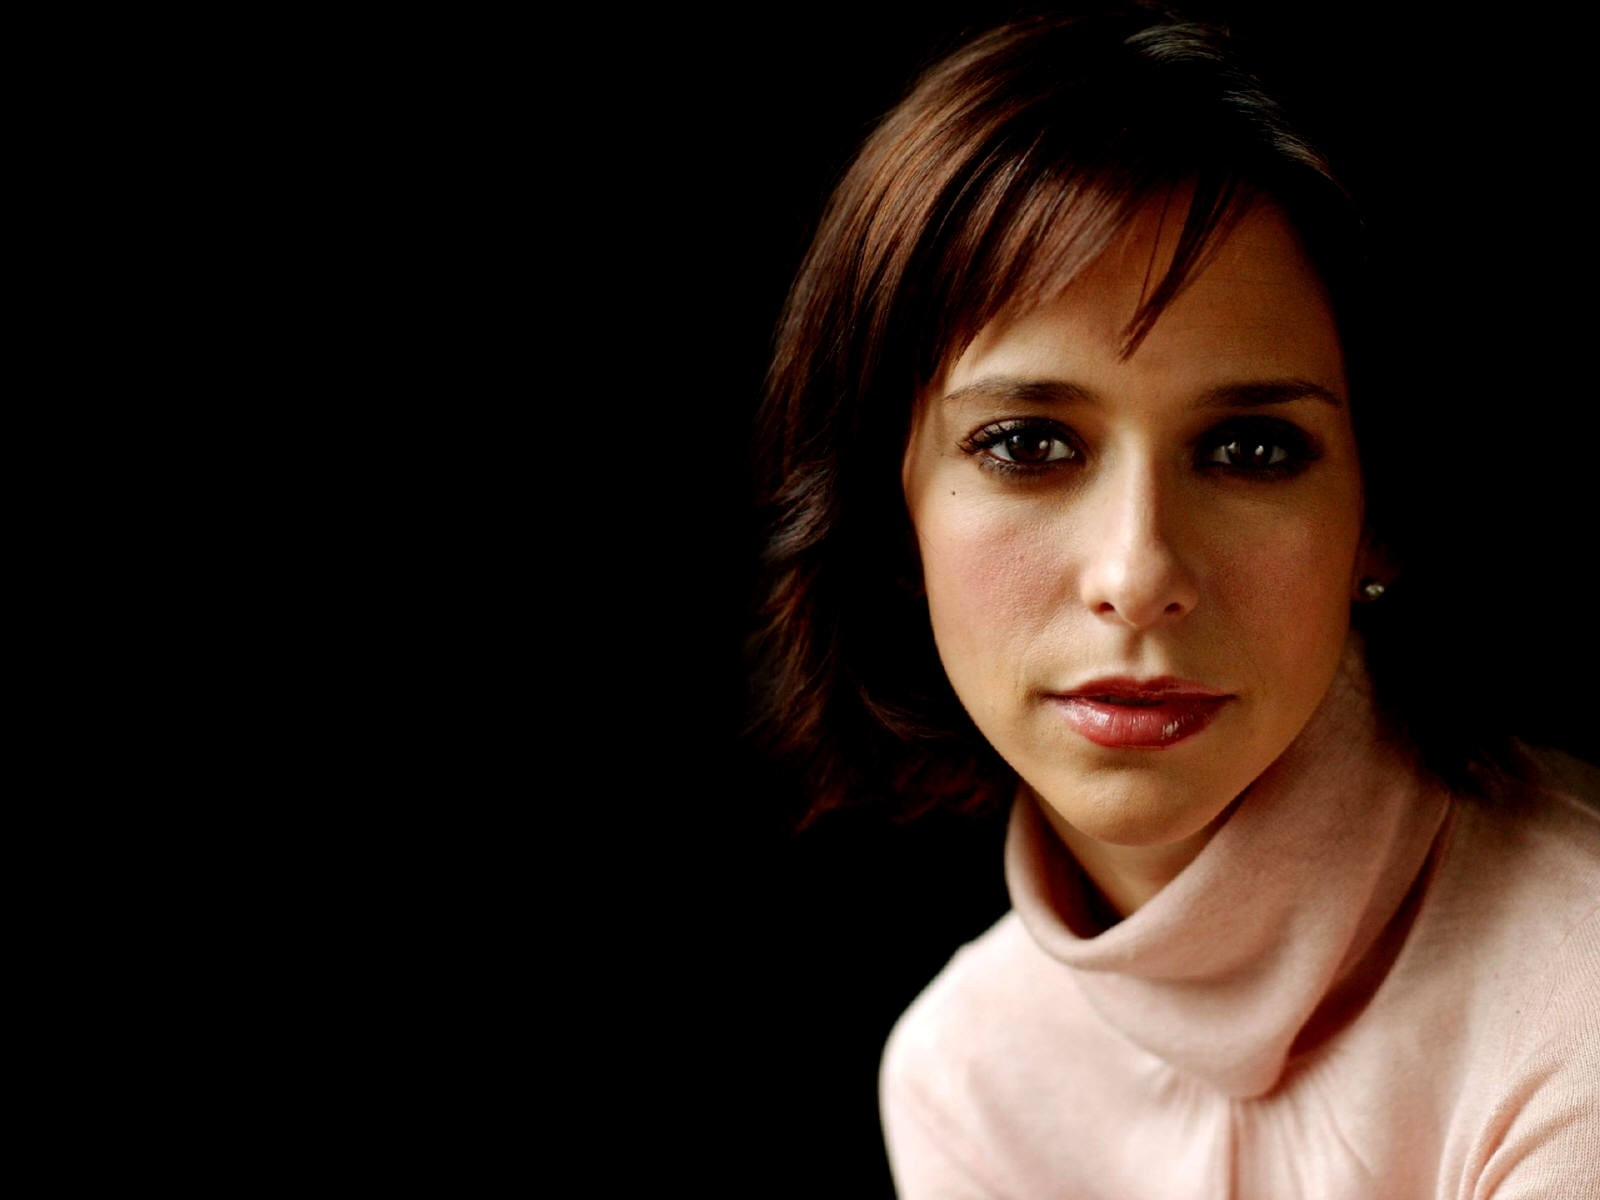 Wallpaper di Jennifer Love Hewitt con maglione a collo alto